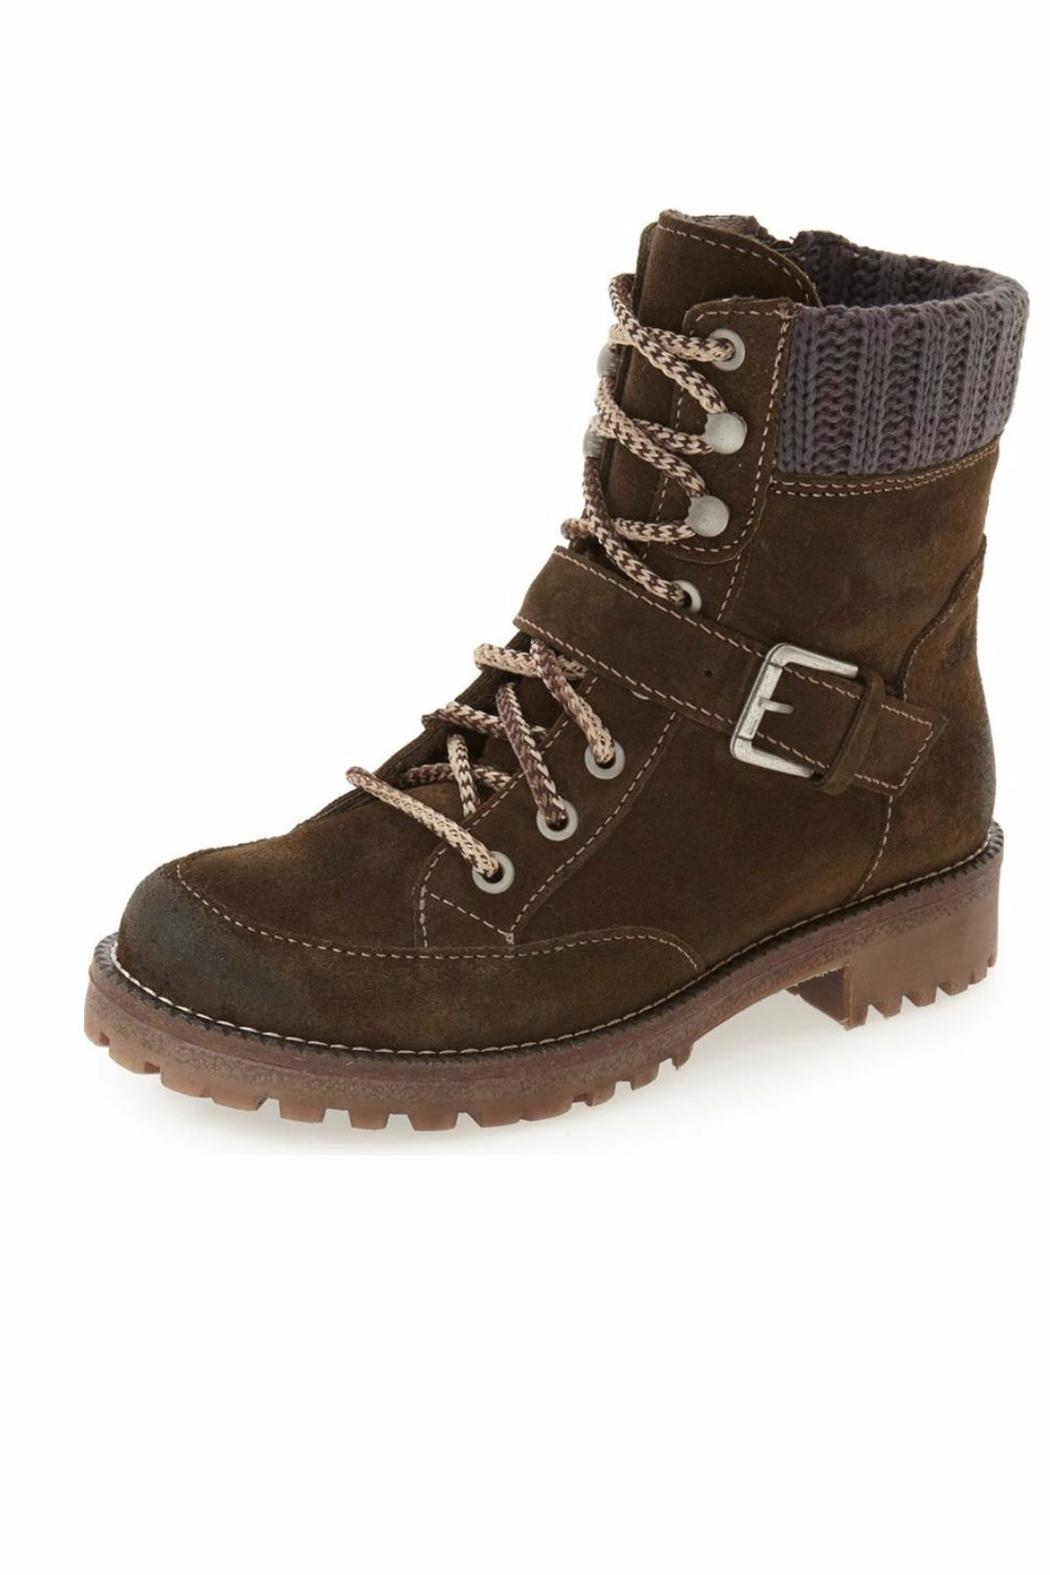 Bos Amp Co Waterproof Cold Weather Boot From California By